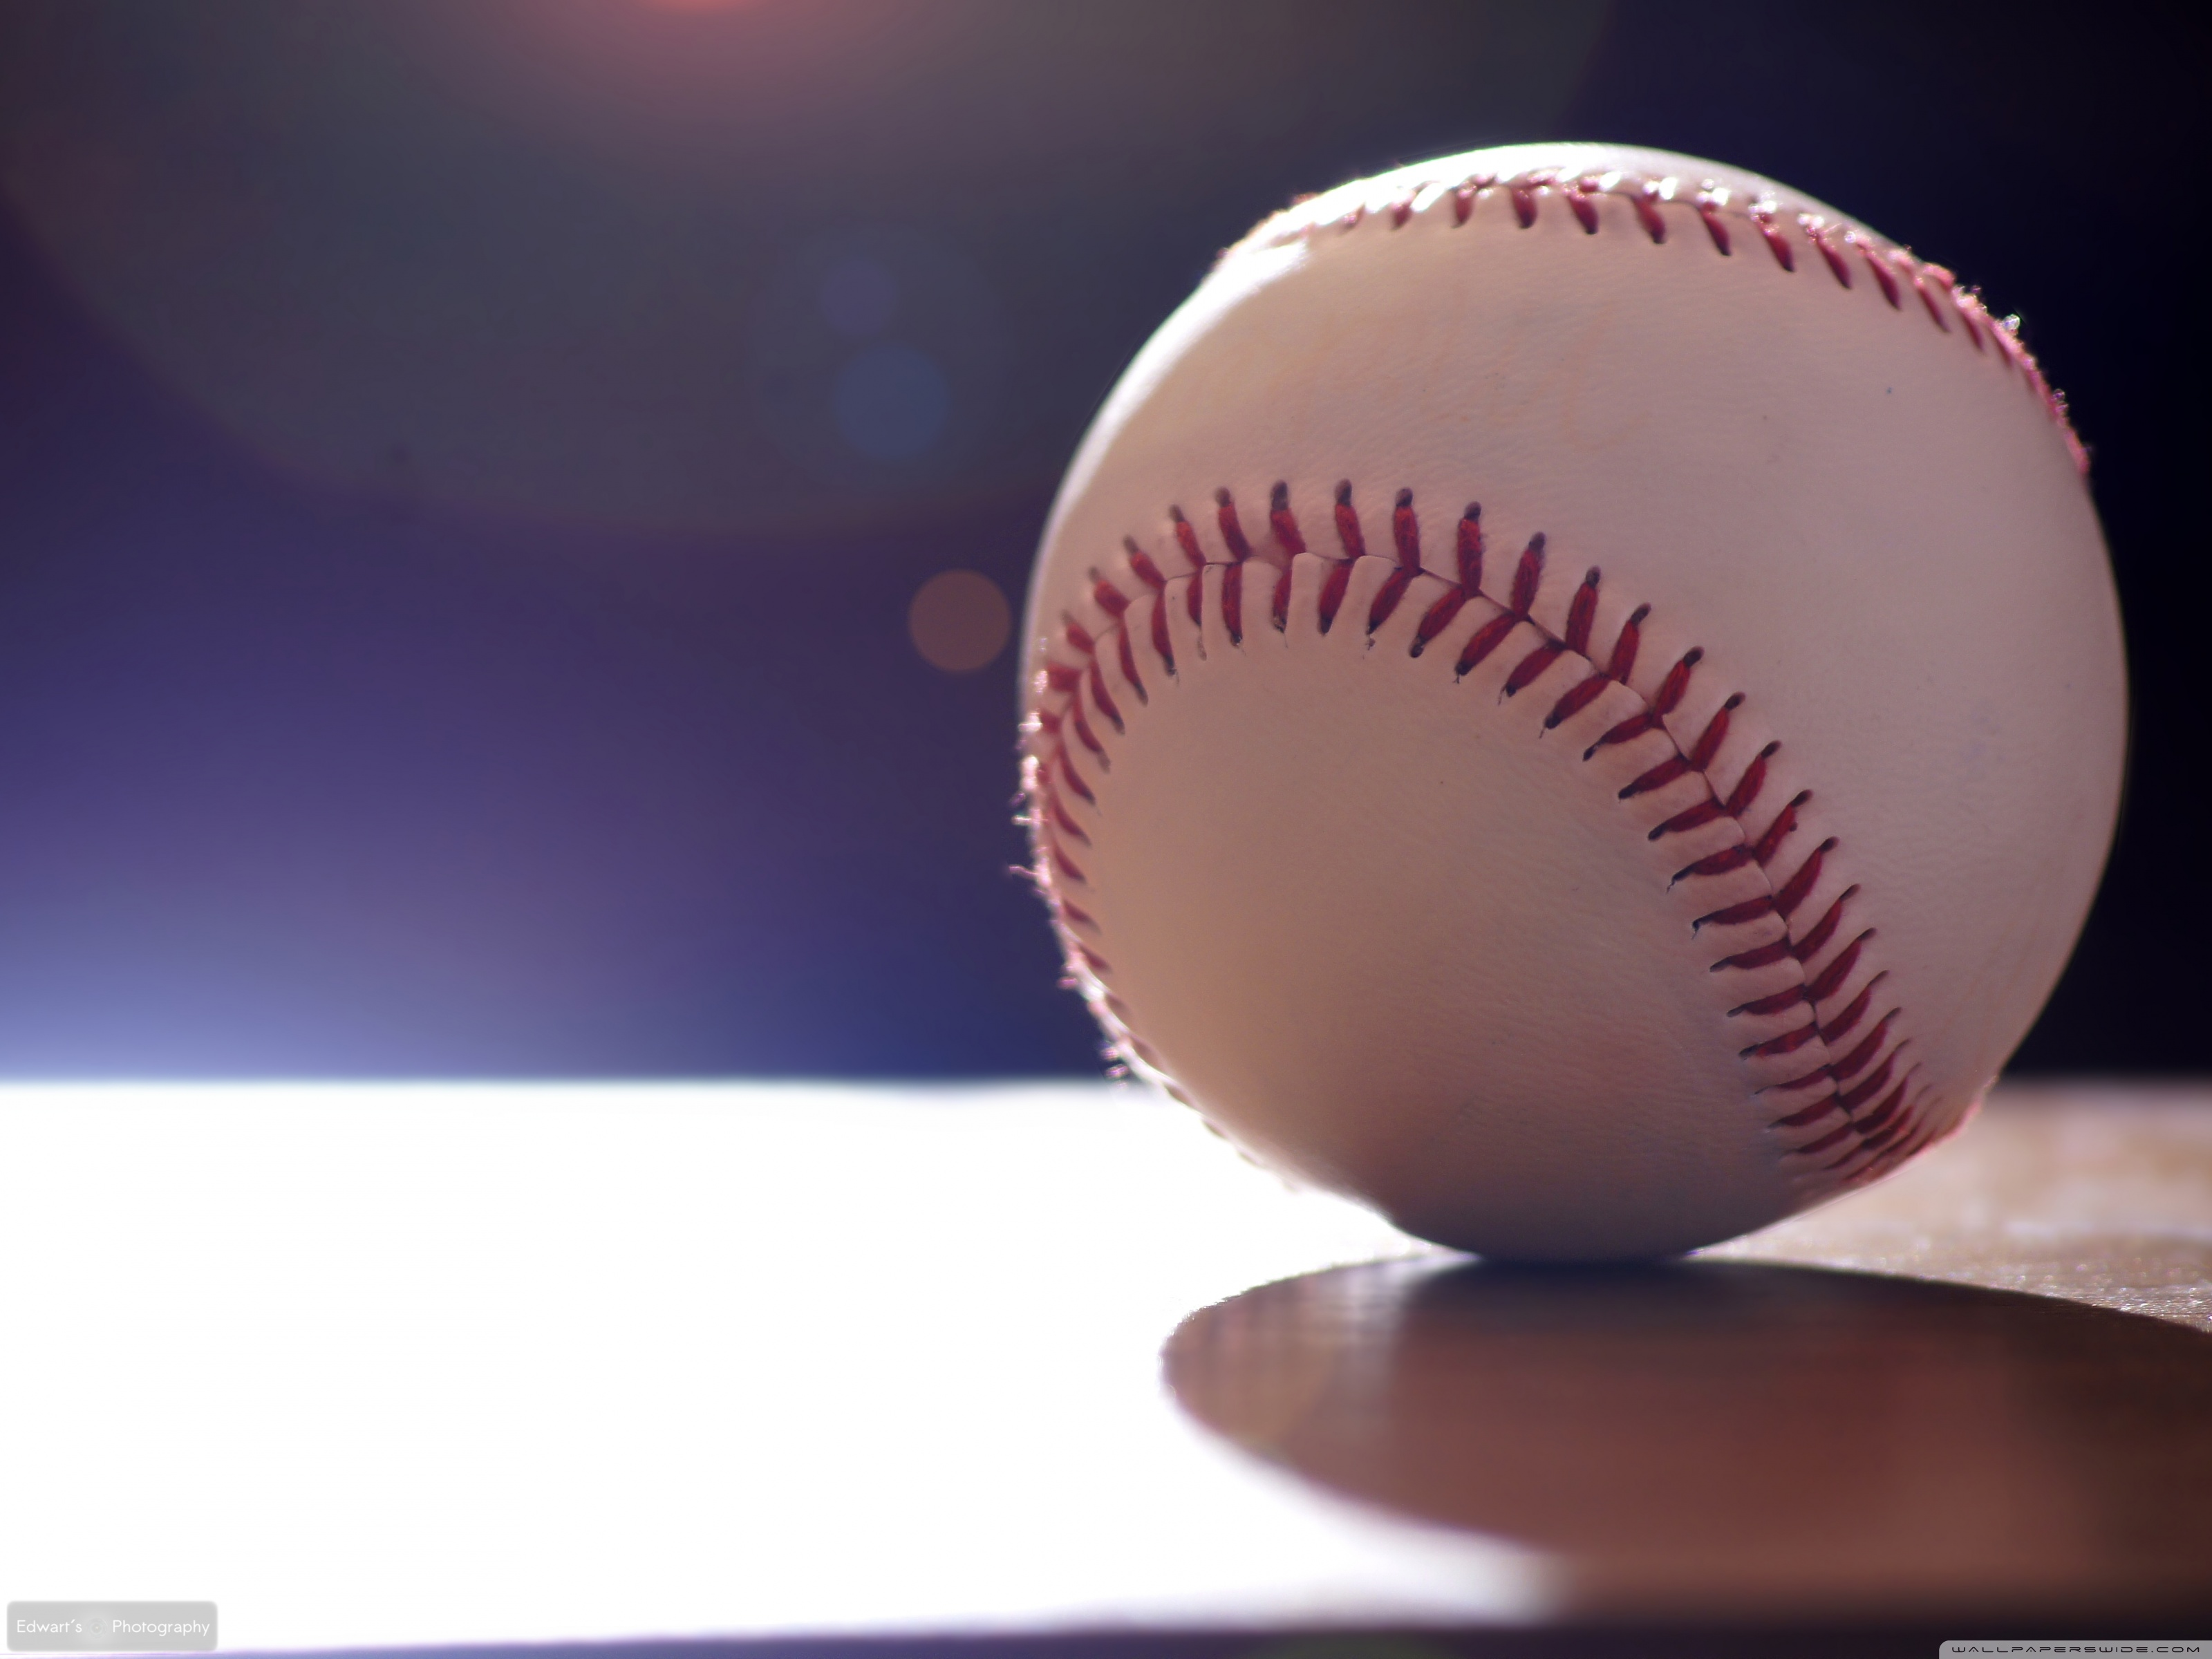 Baseball Wallpaper For Iphone Posted By Samantha Walker